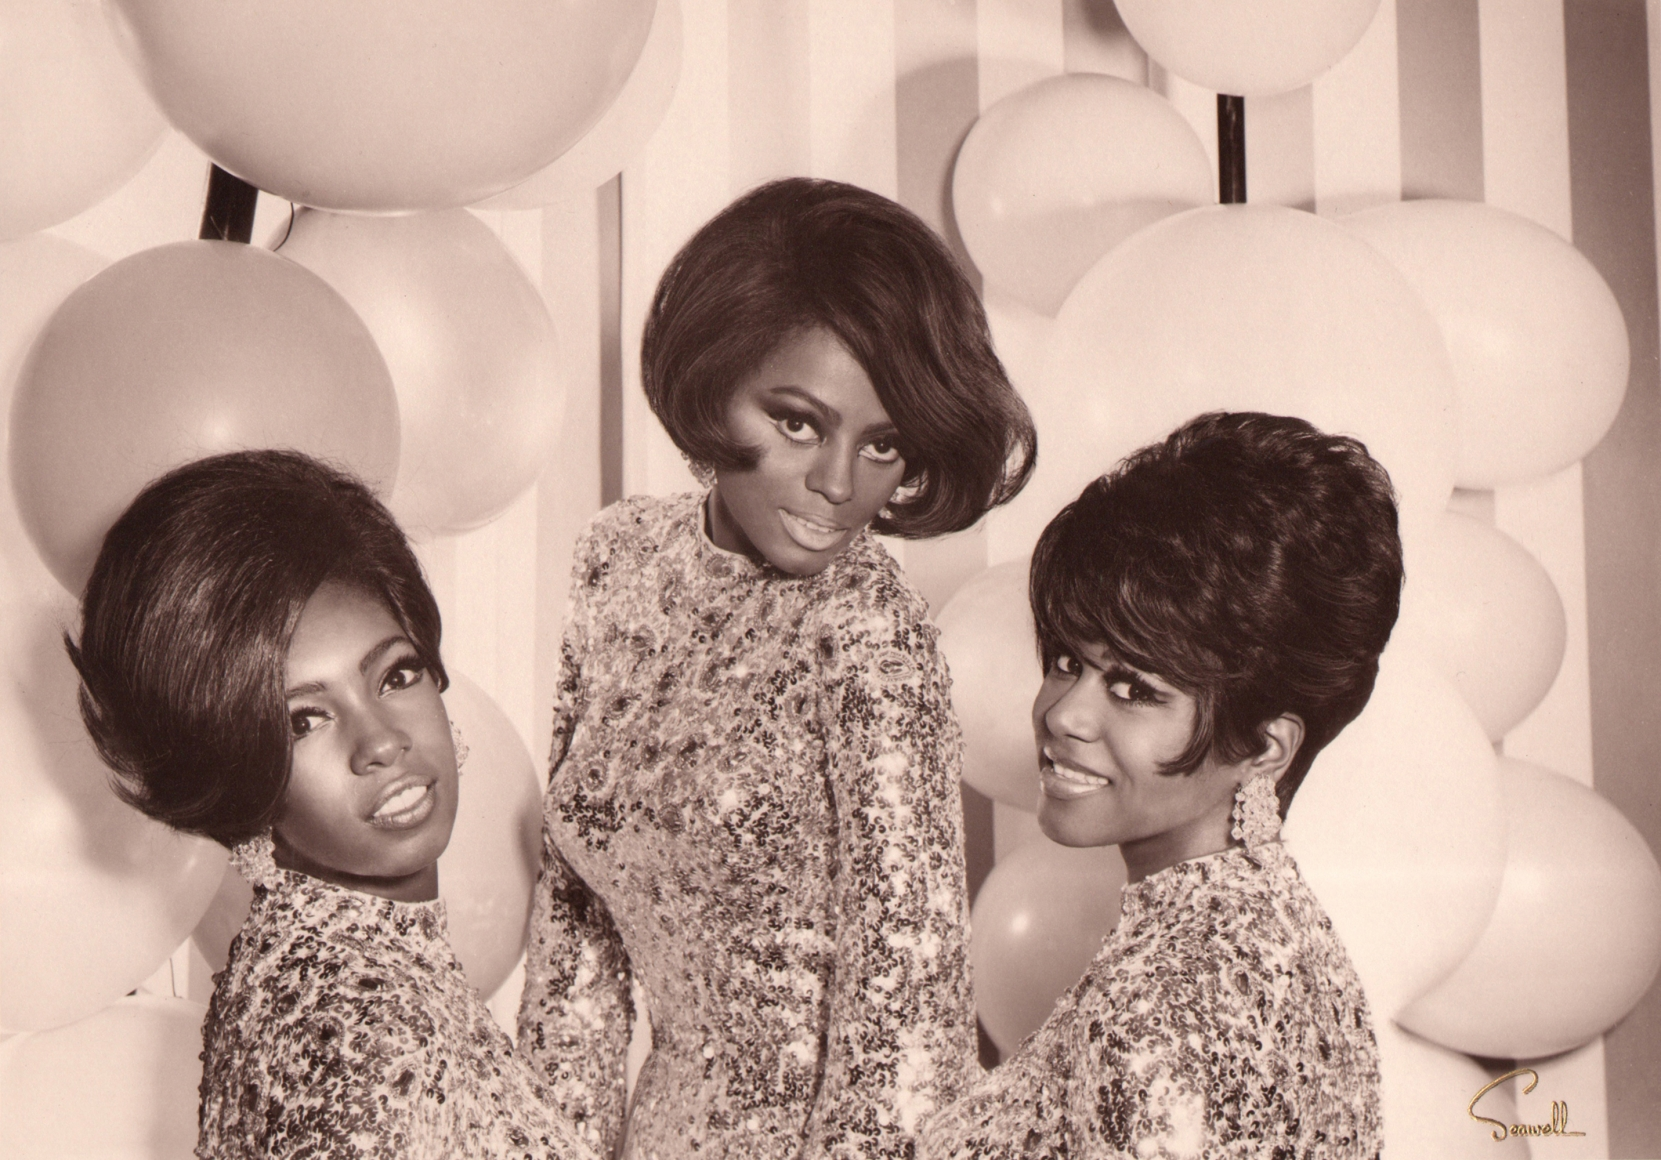 Wallace Seawell, Diana Ross & The Supremes, 1967. The three subjects pose in sparkling dresses against a striped wall with white balloons.